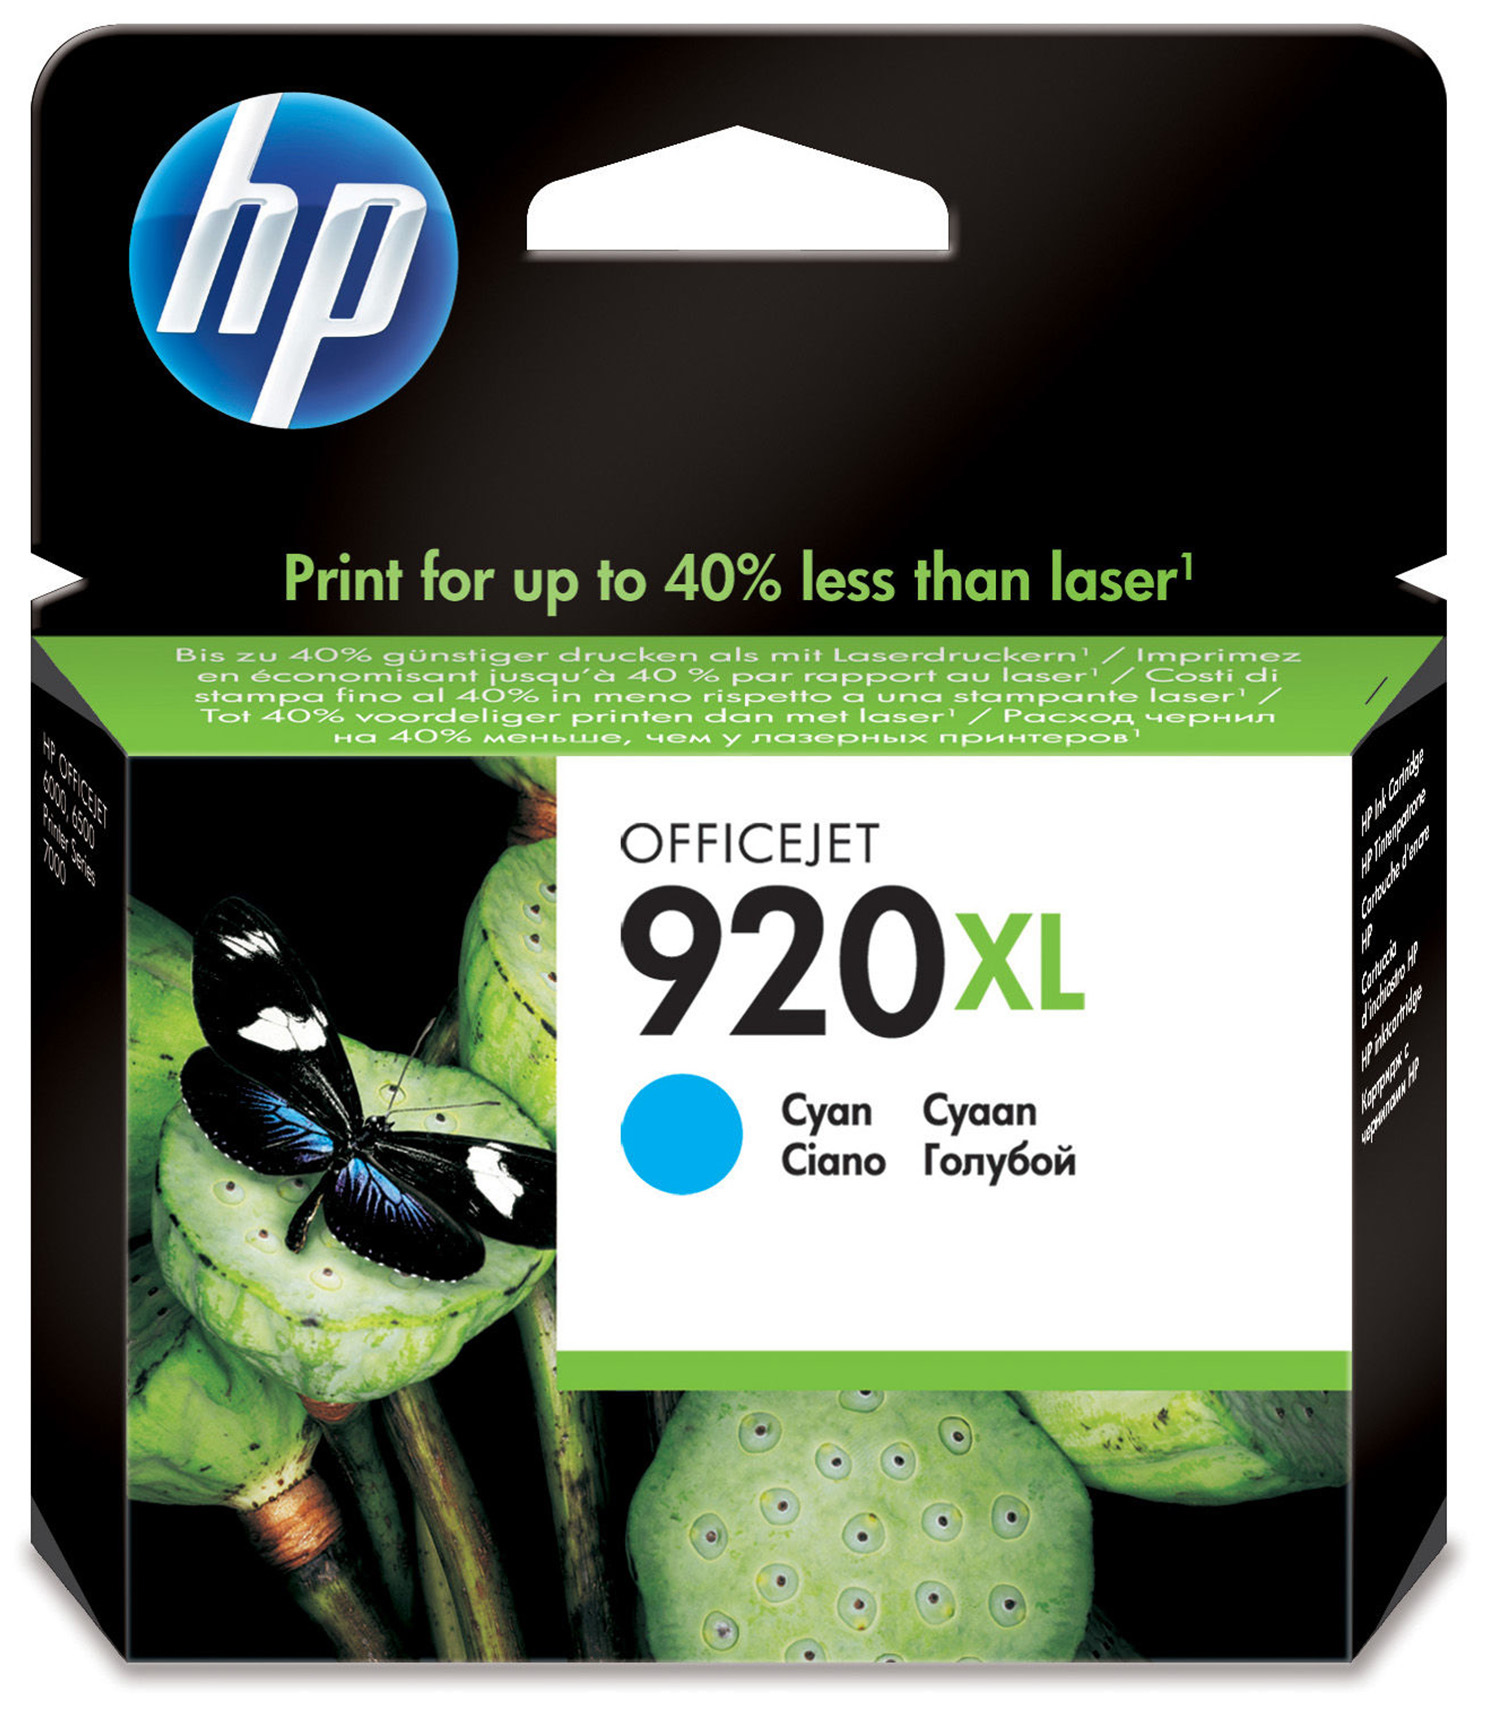 Compatible HP CD972AE (920XL) Cyan Ink Cartridge CD972AE - rem01